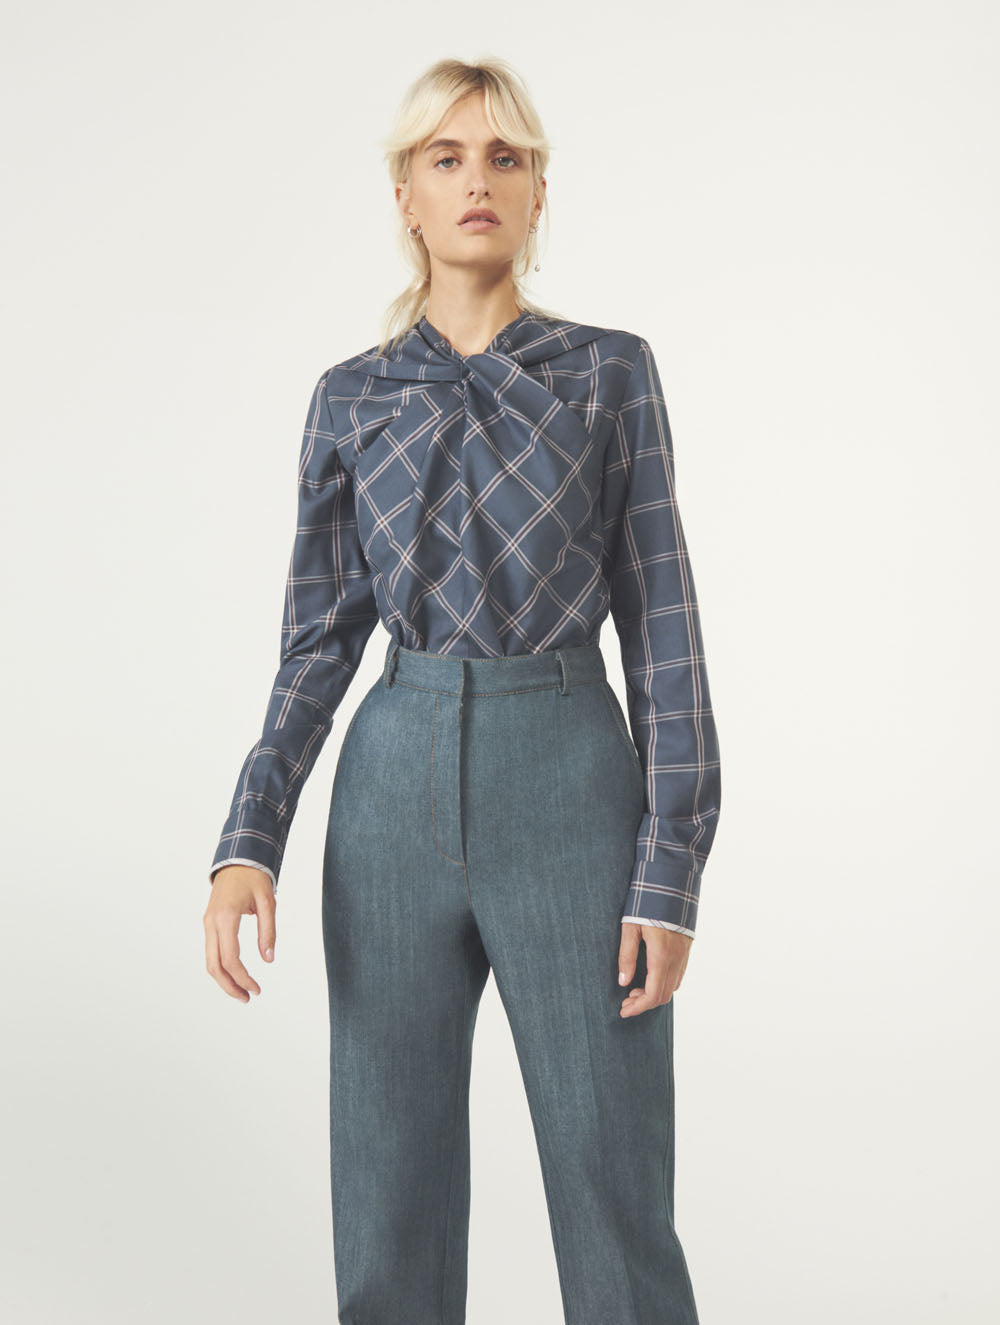 Women Fashion Lookbook Resort 2020 Collection Aknvas Look 10